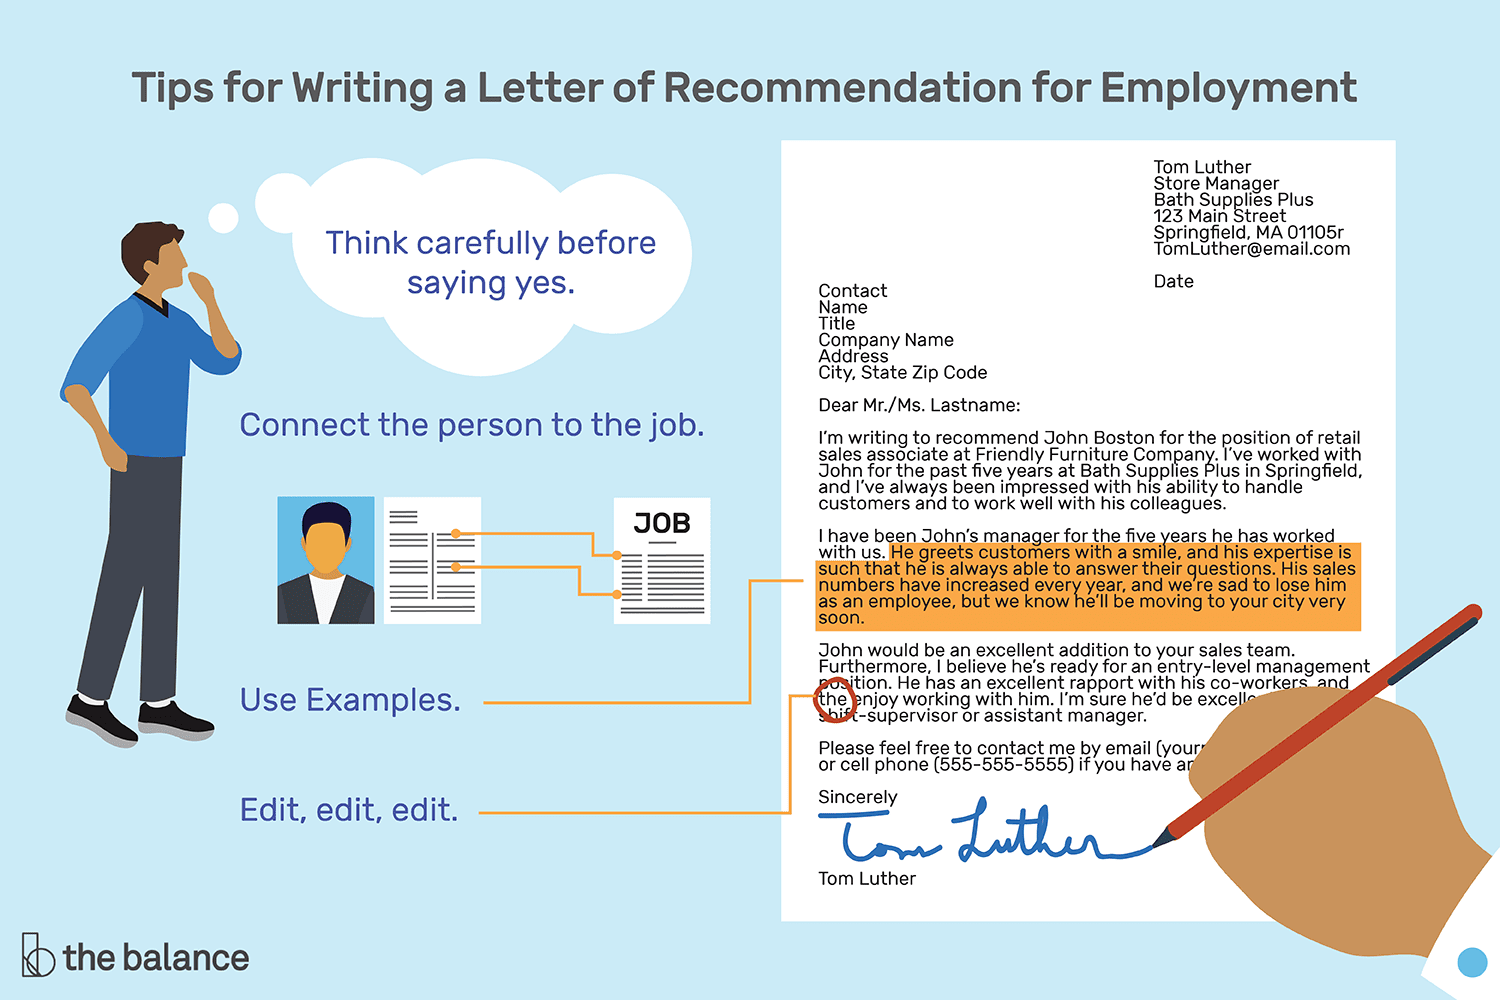 tips for writing a letter of recommendation for employment melissa ling the balance 2018